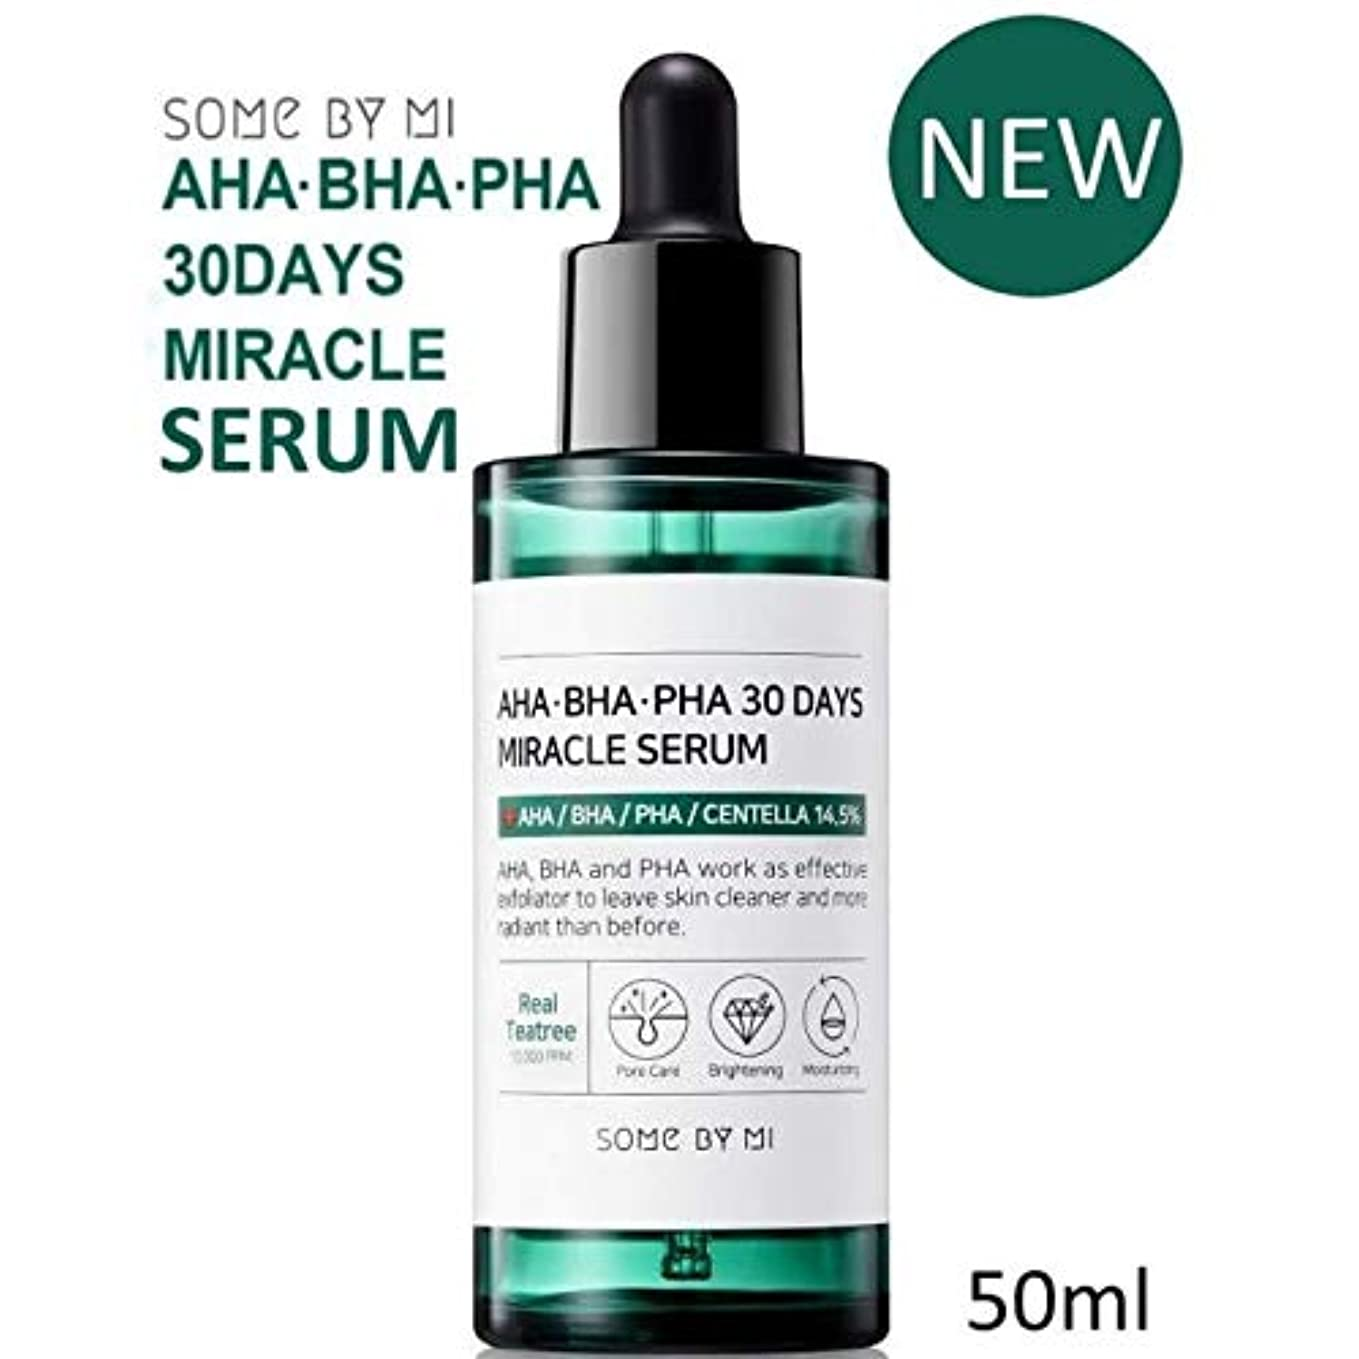 [Somebymi] AHA BHA PHA 30Days Miracle Serum 50ml/Korea Cosmetic [並行輸入品]